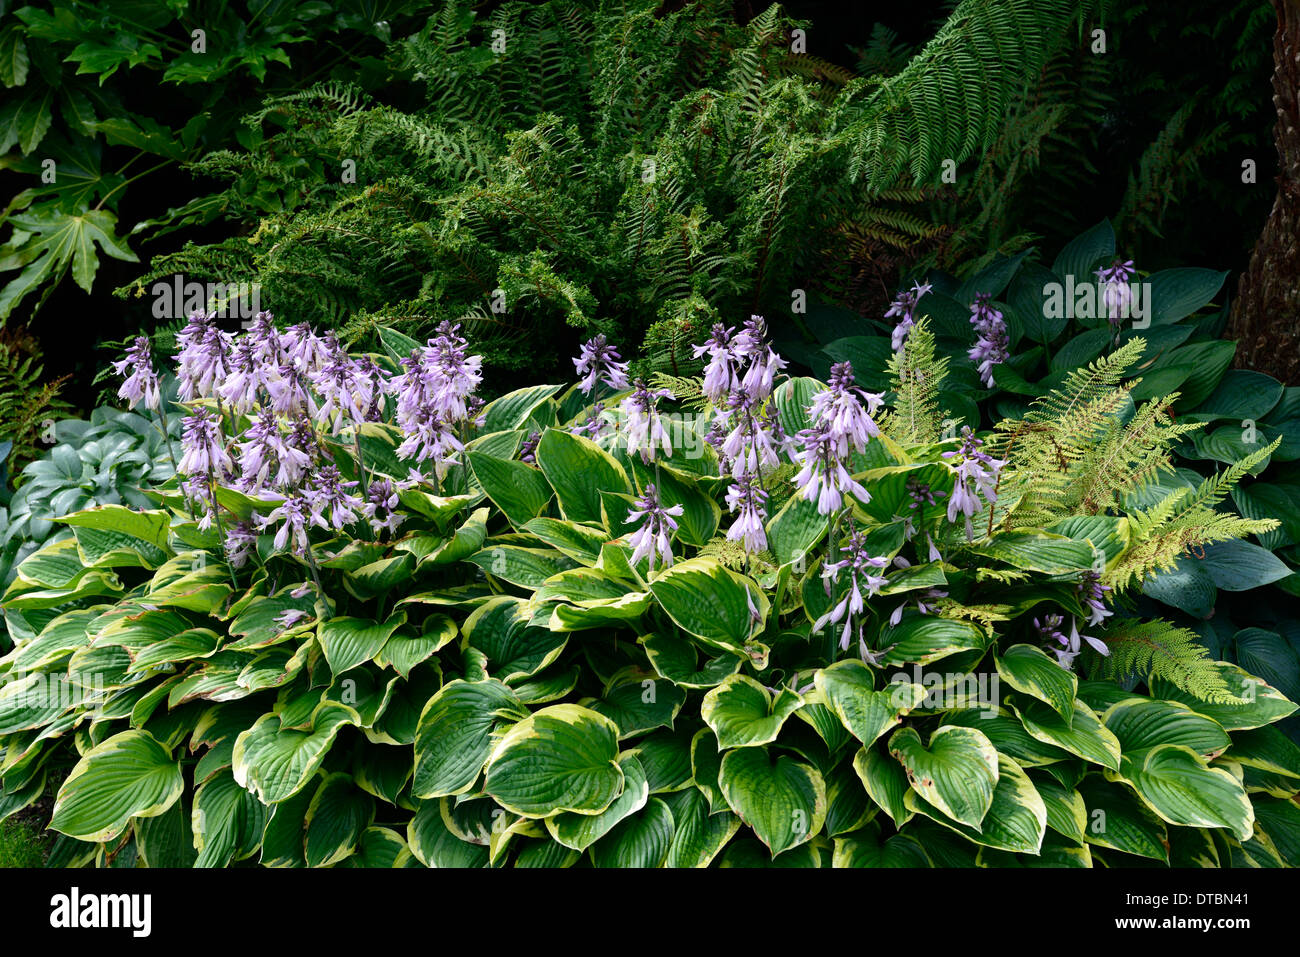 Hosta Green White Variegated Leaves Foliage Purple Flower Flowers